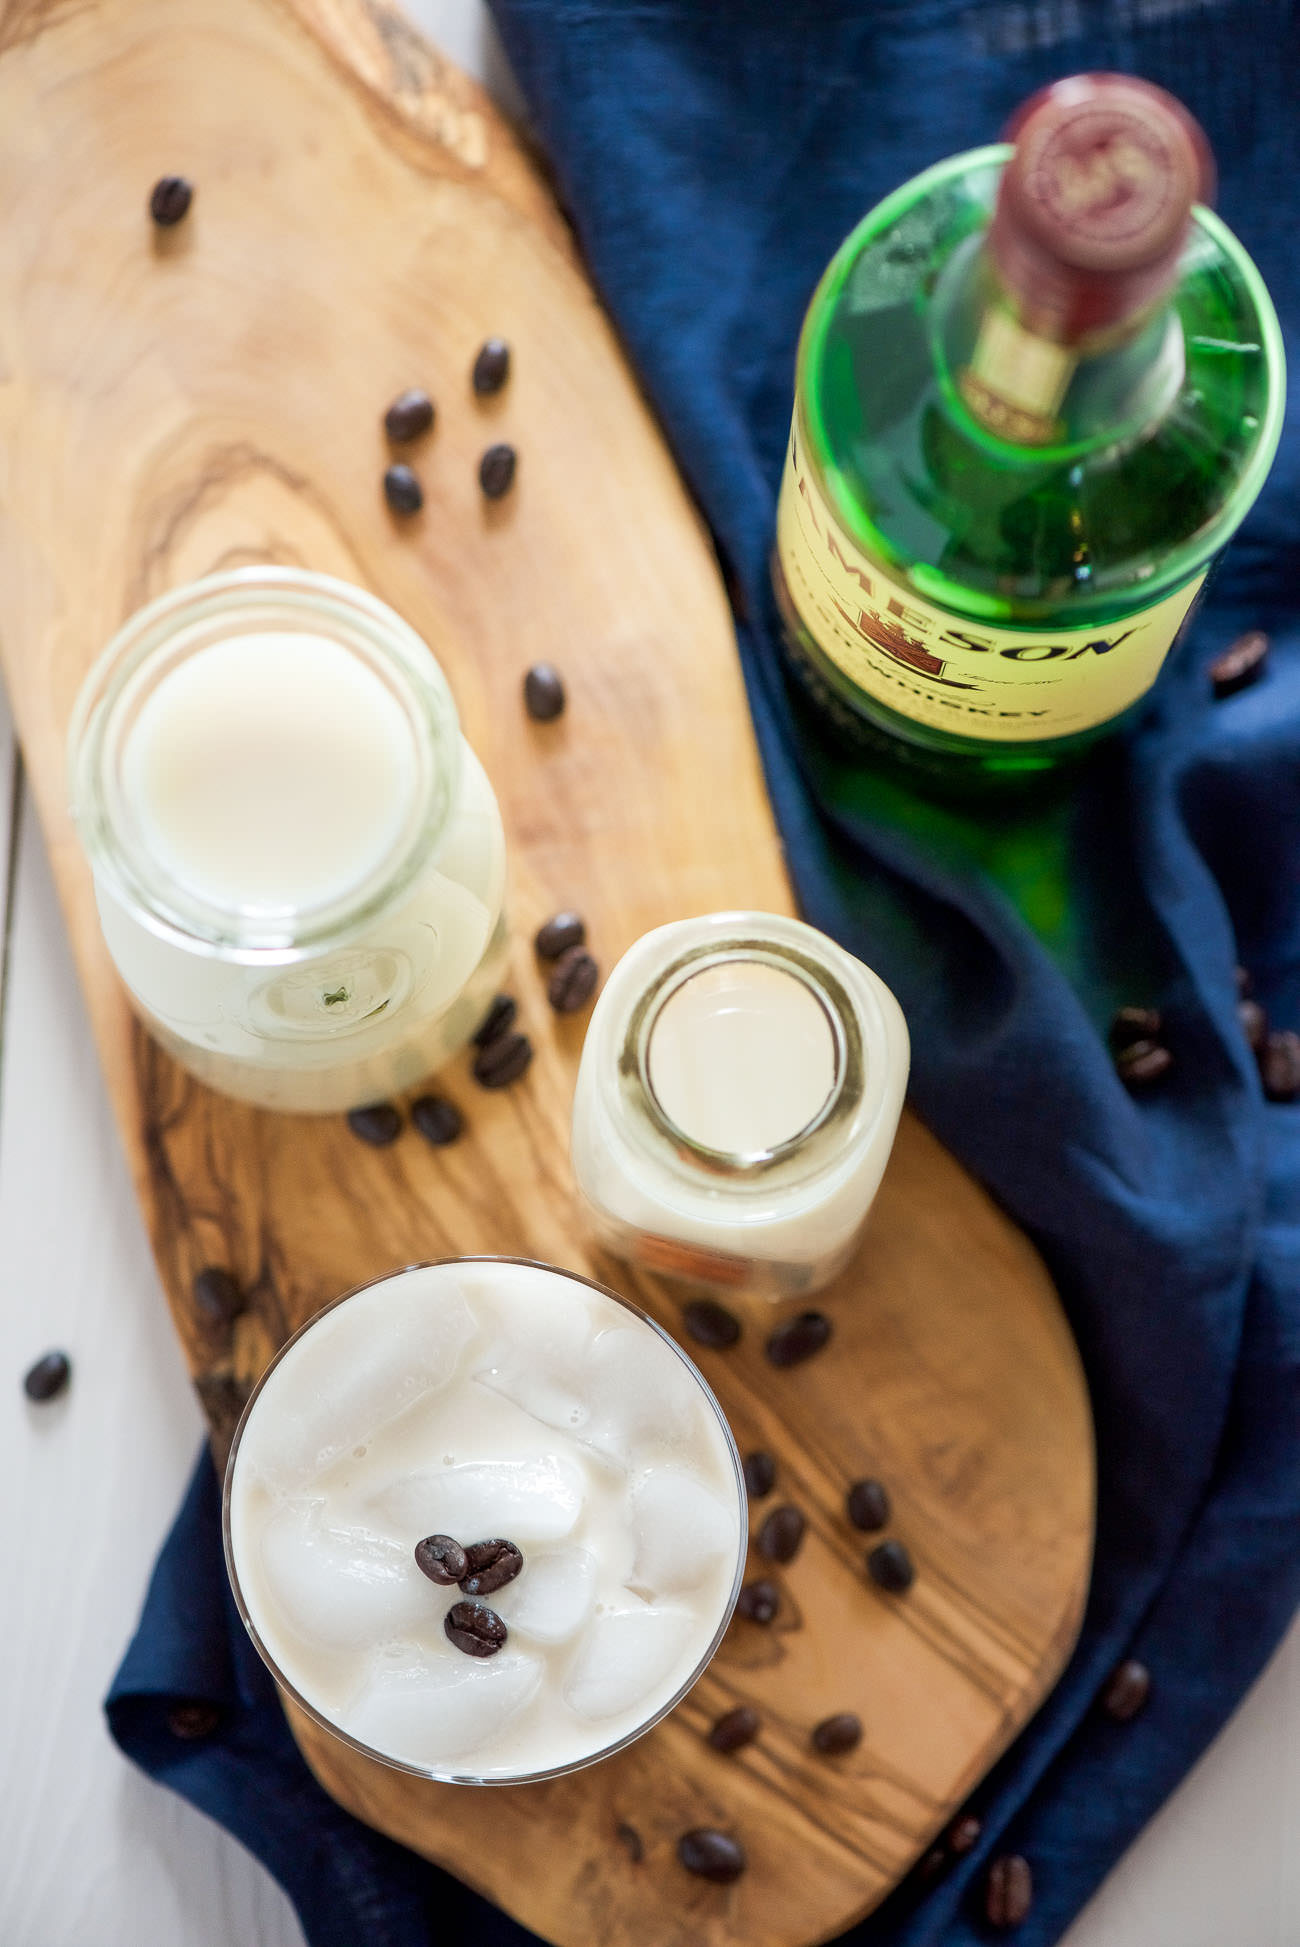 This is simply the best Homemade Baileys Irish Cream! It is perfectly sweet, smooth and a slight whiskey kick. Whip up a batch and add a splash to your morning coffee or over ice to end a long day!